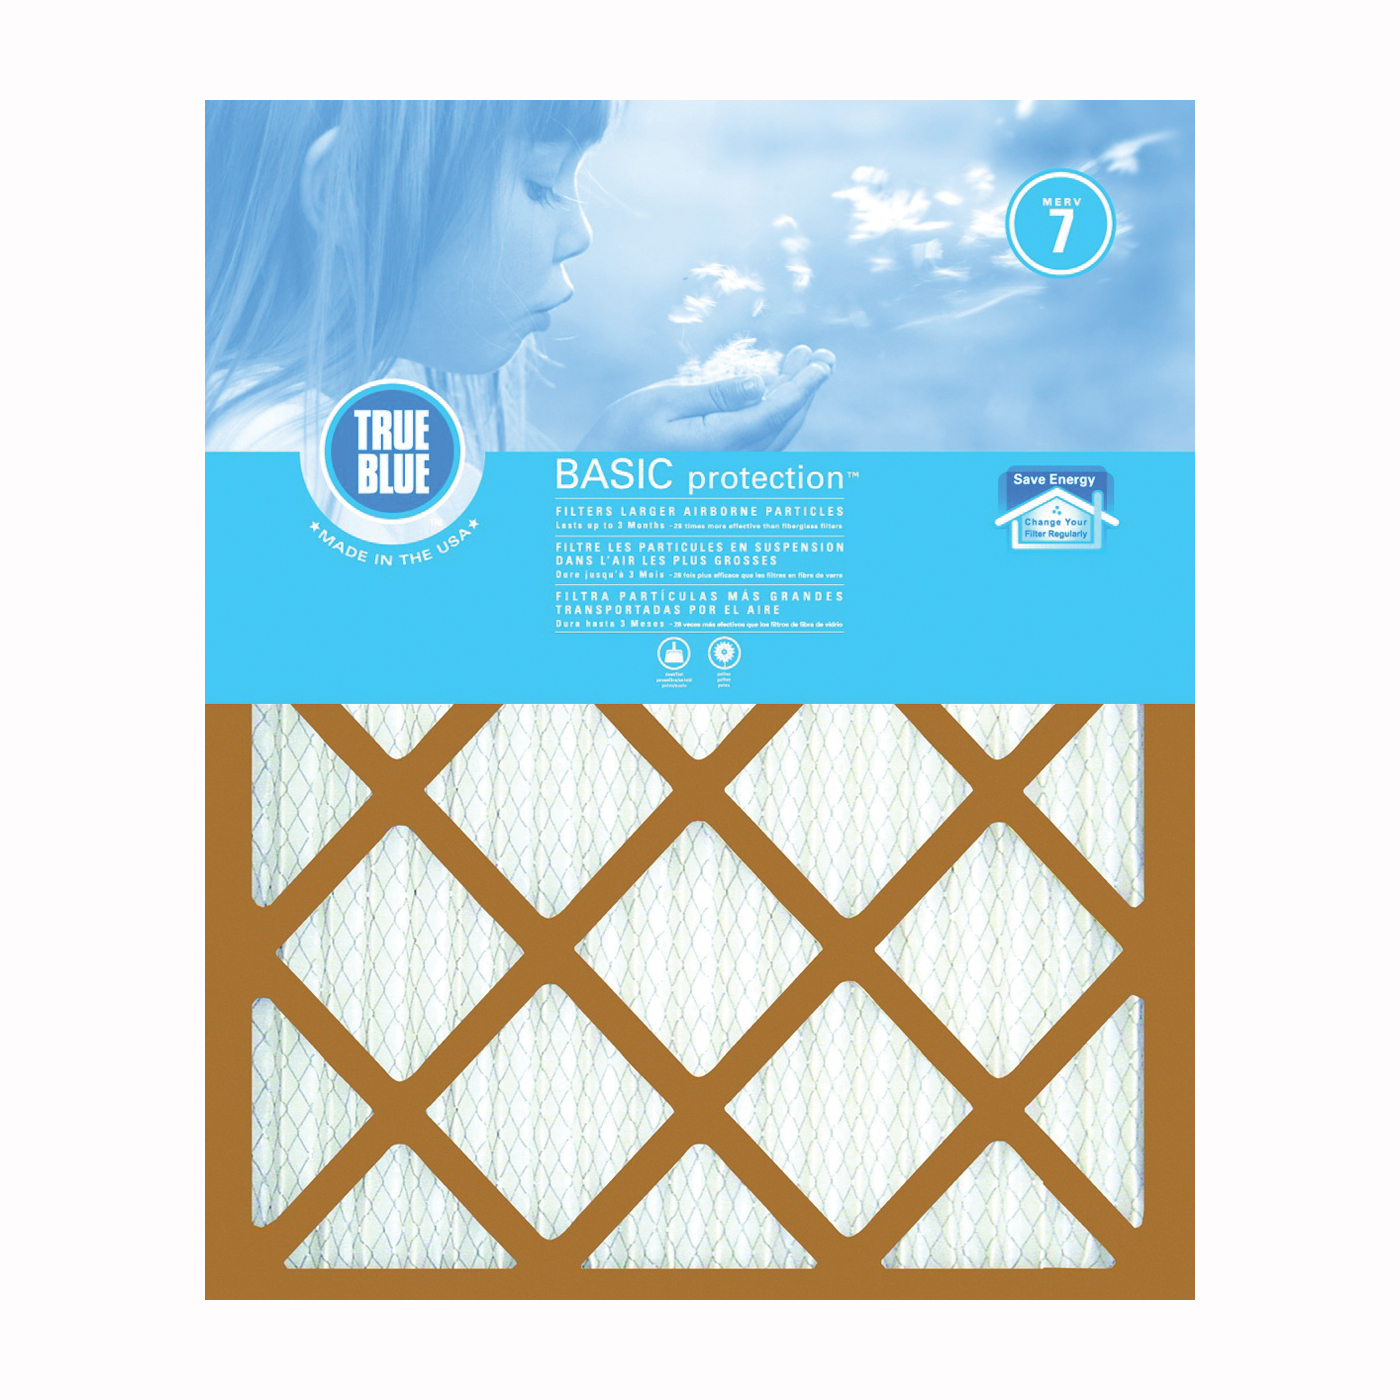 Picture of True Blue 216251 Air Filter, 25 in L, 16 in W, 7 MERV, 53.7 % Filter Efficiency, Synthetic Pleated Filter Media